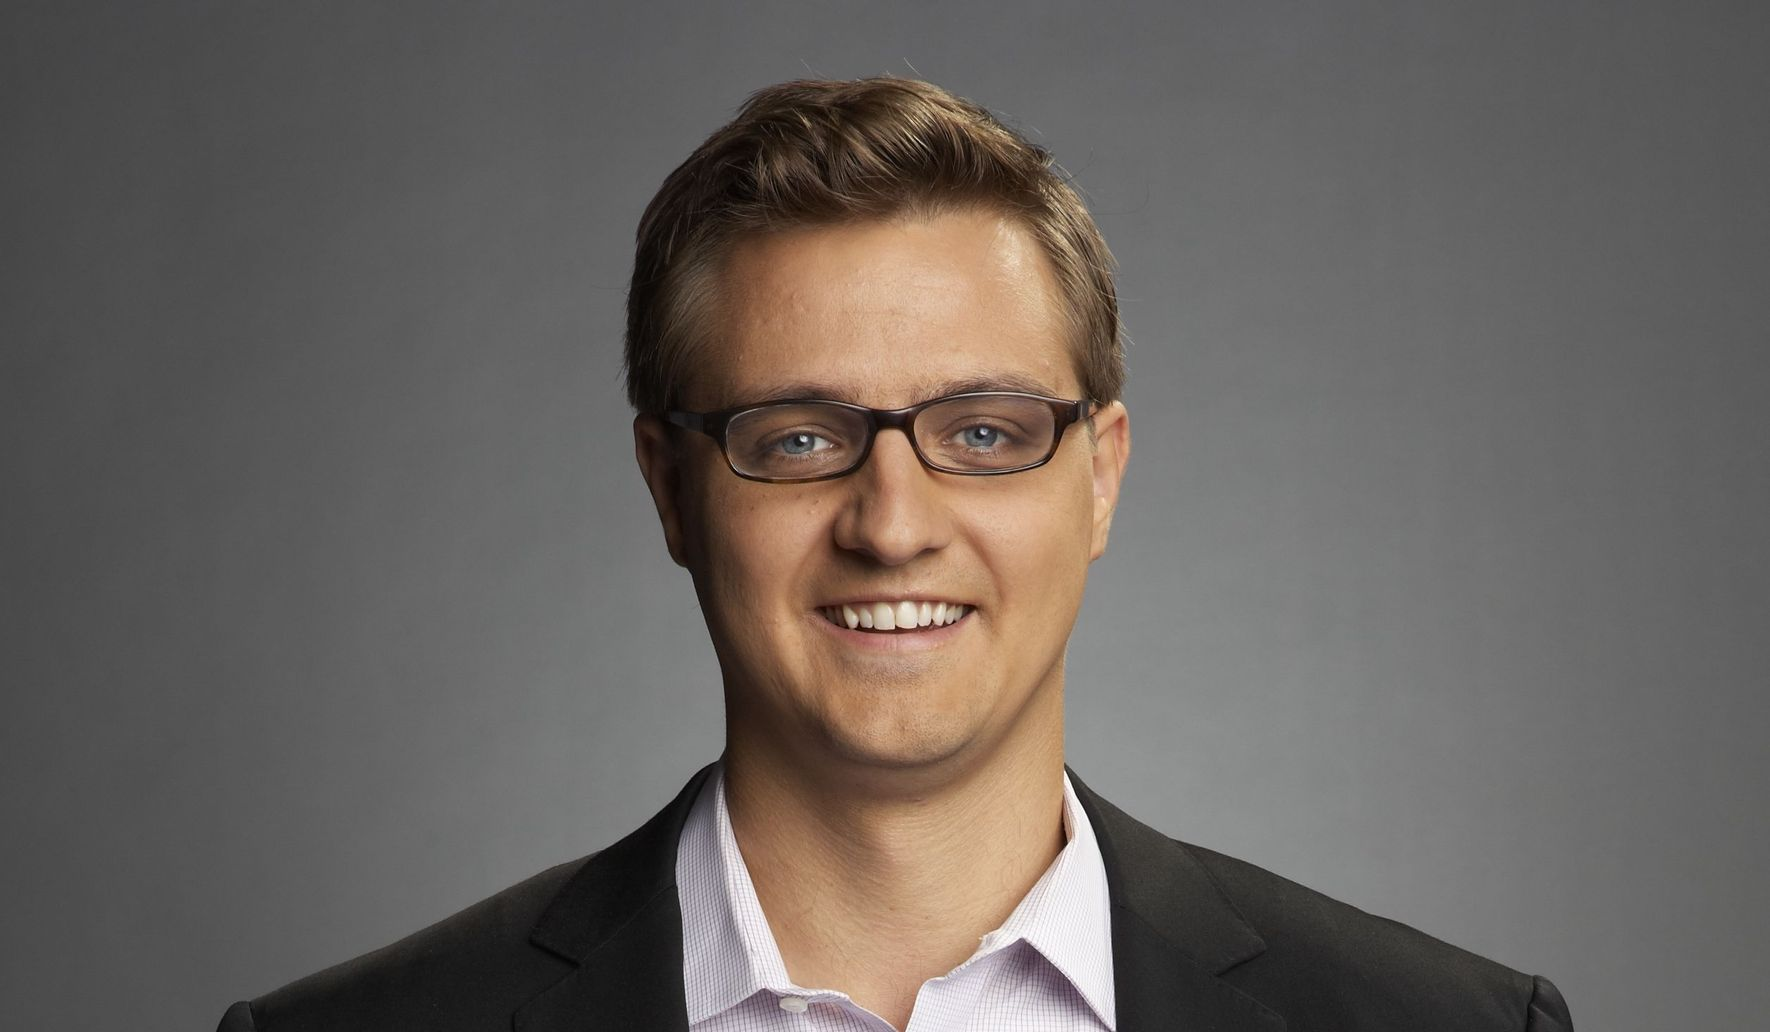 MSNBC's Chris Hayes praises Ronan Farrow's reporting on network leadership